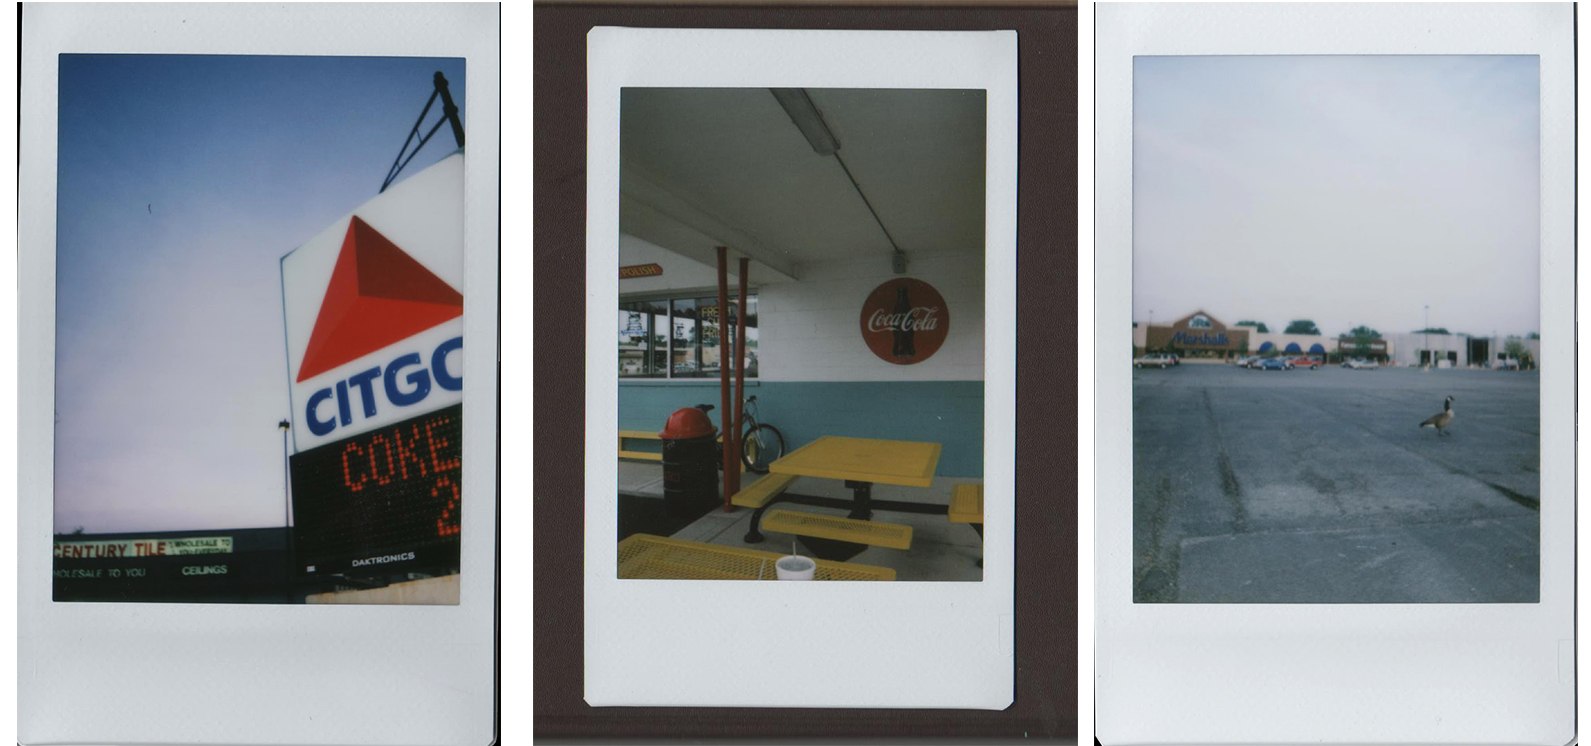 Instax photo sketchbook.